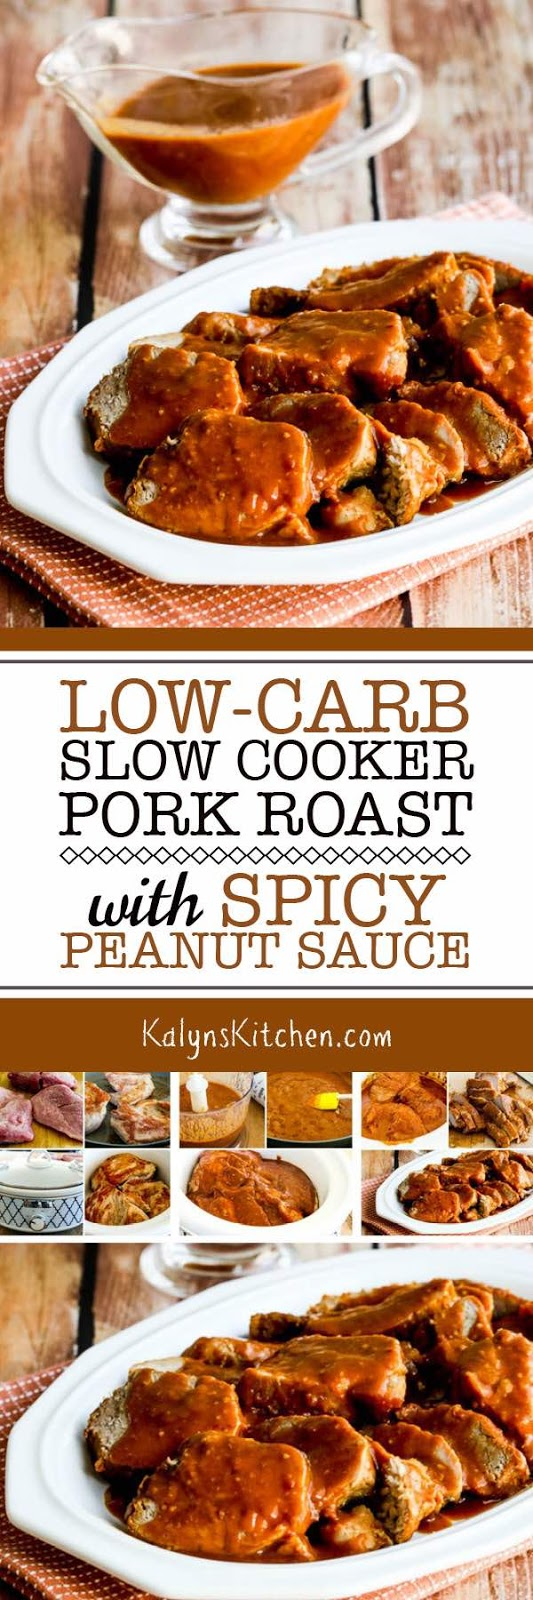 Low-Carb Slow Cooker (or Pressure Cooker) Pork Roast with Spicy Peanut ...